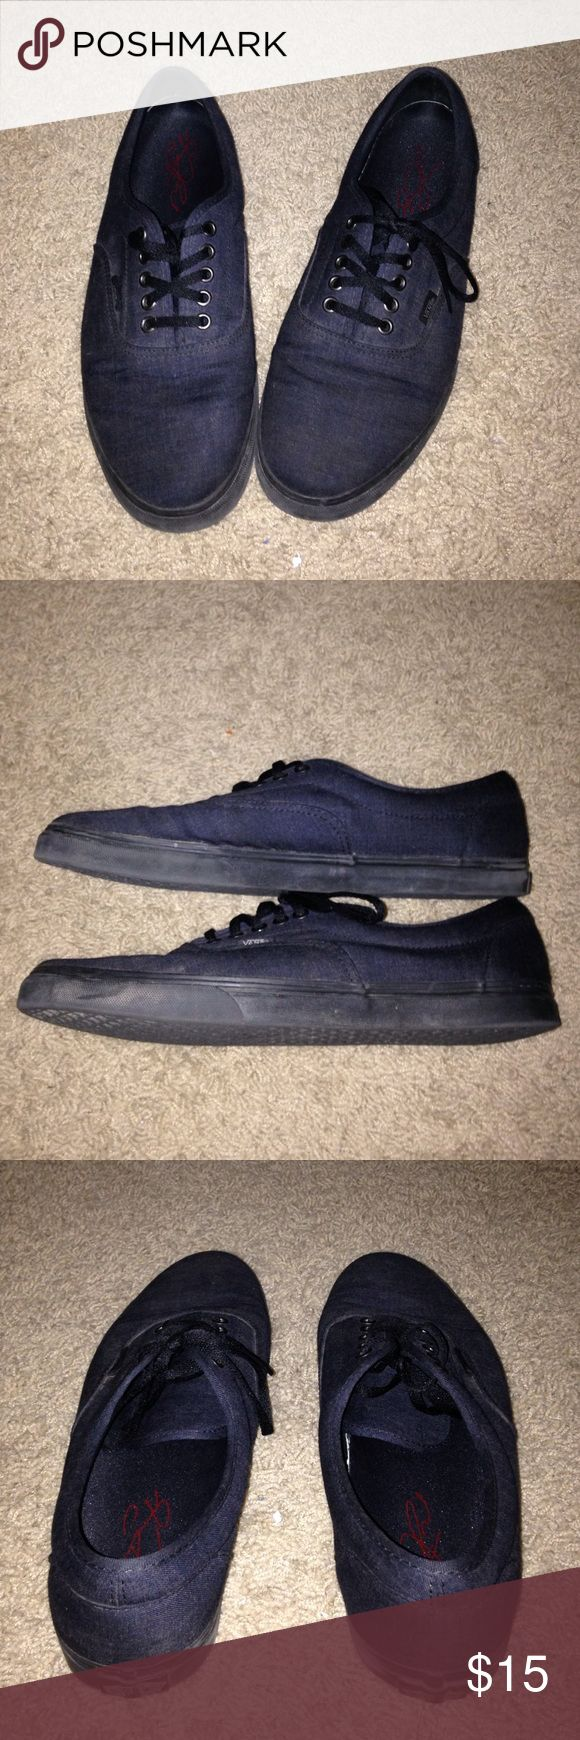 Vans skate shoe Size 11 vans skate shoe. Slightly worn. Soles have some wear to them. Different insoles. Vans Shoes Sneakers